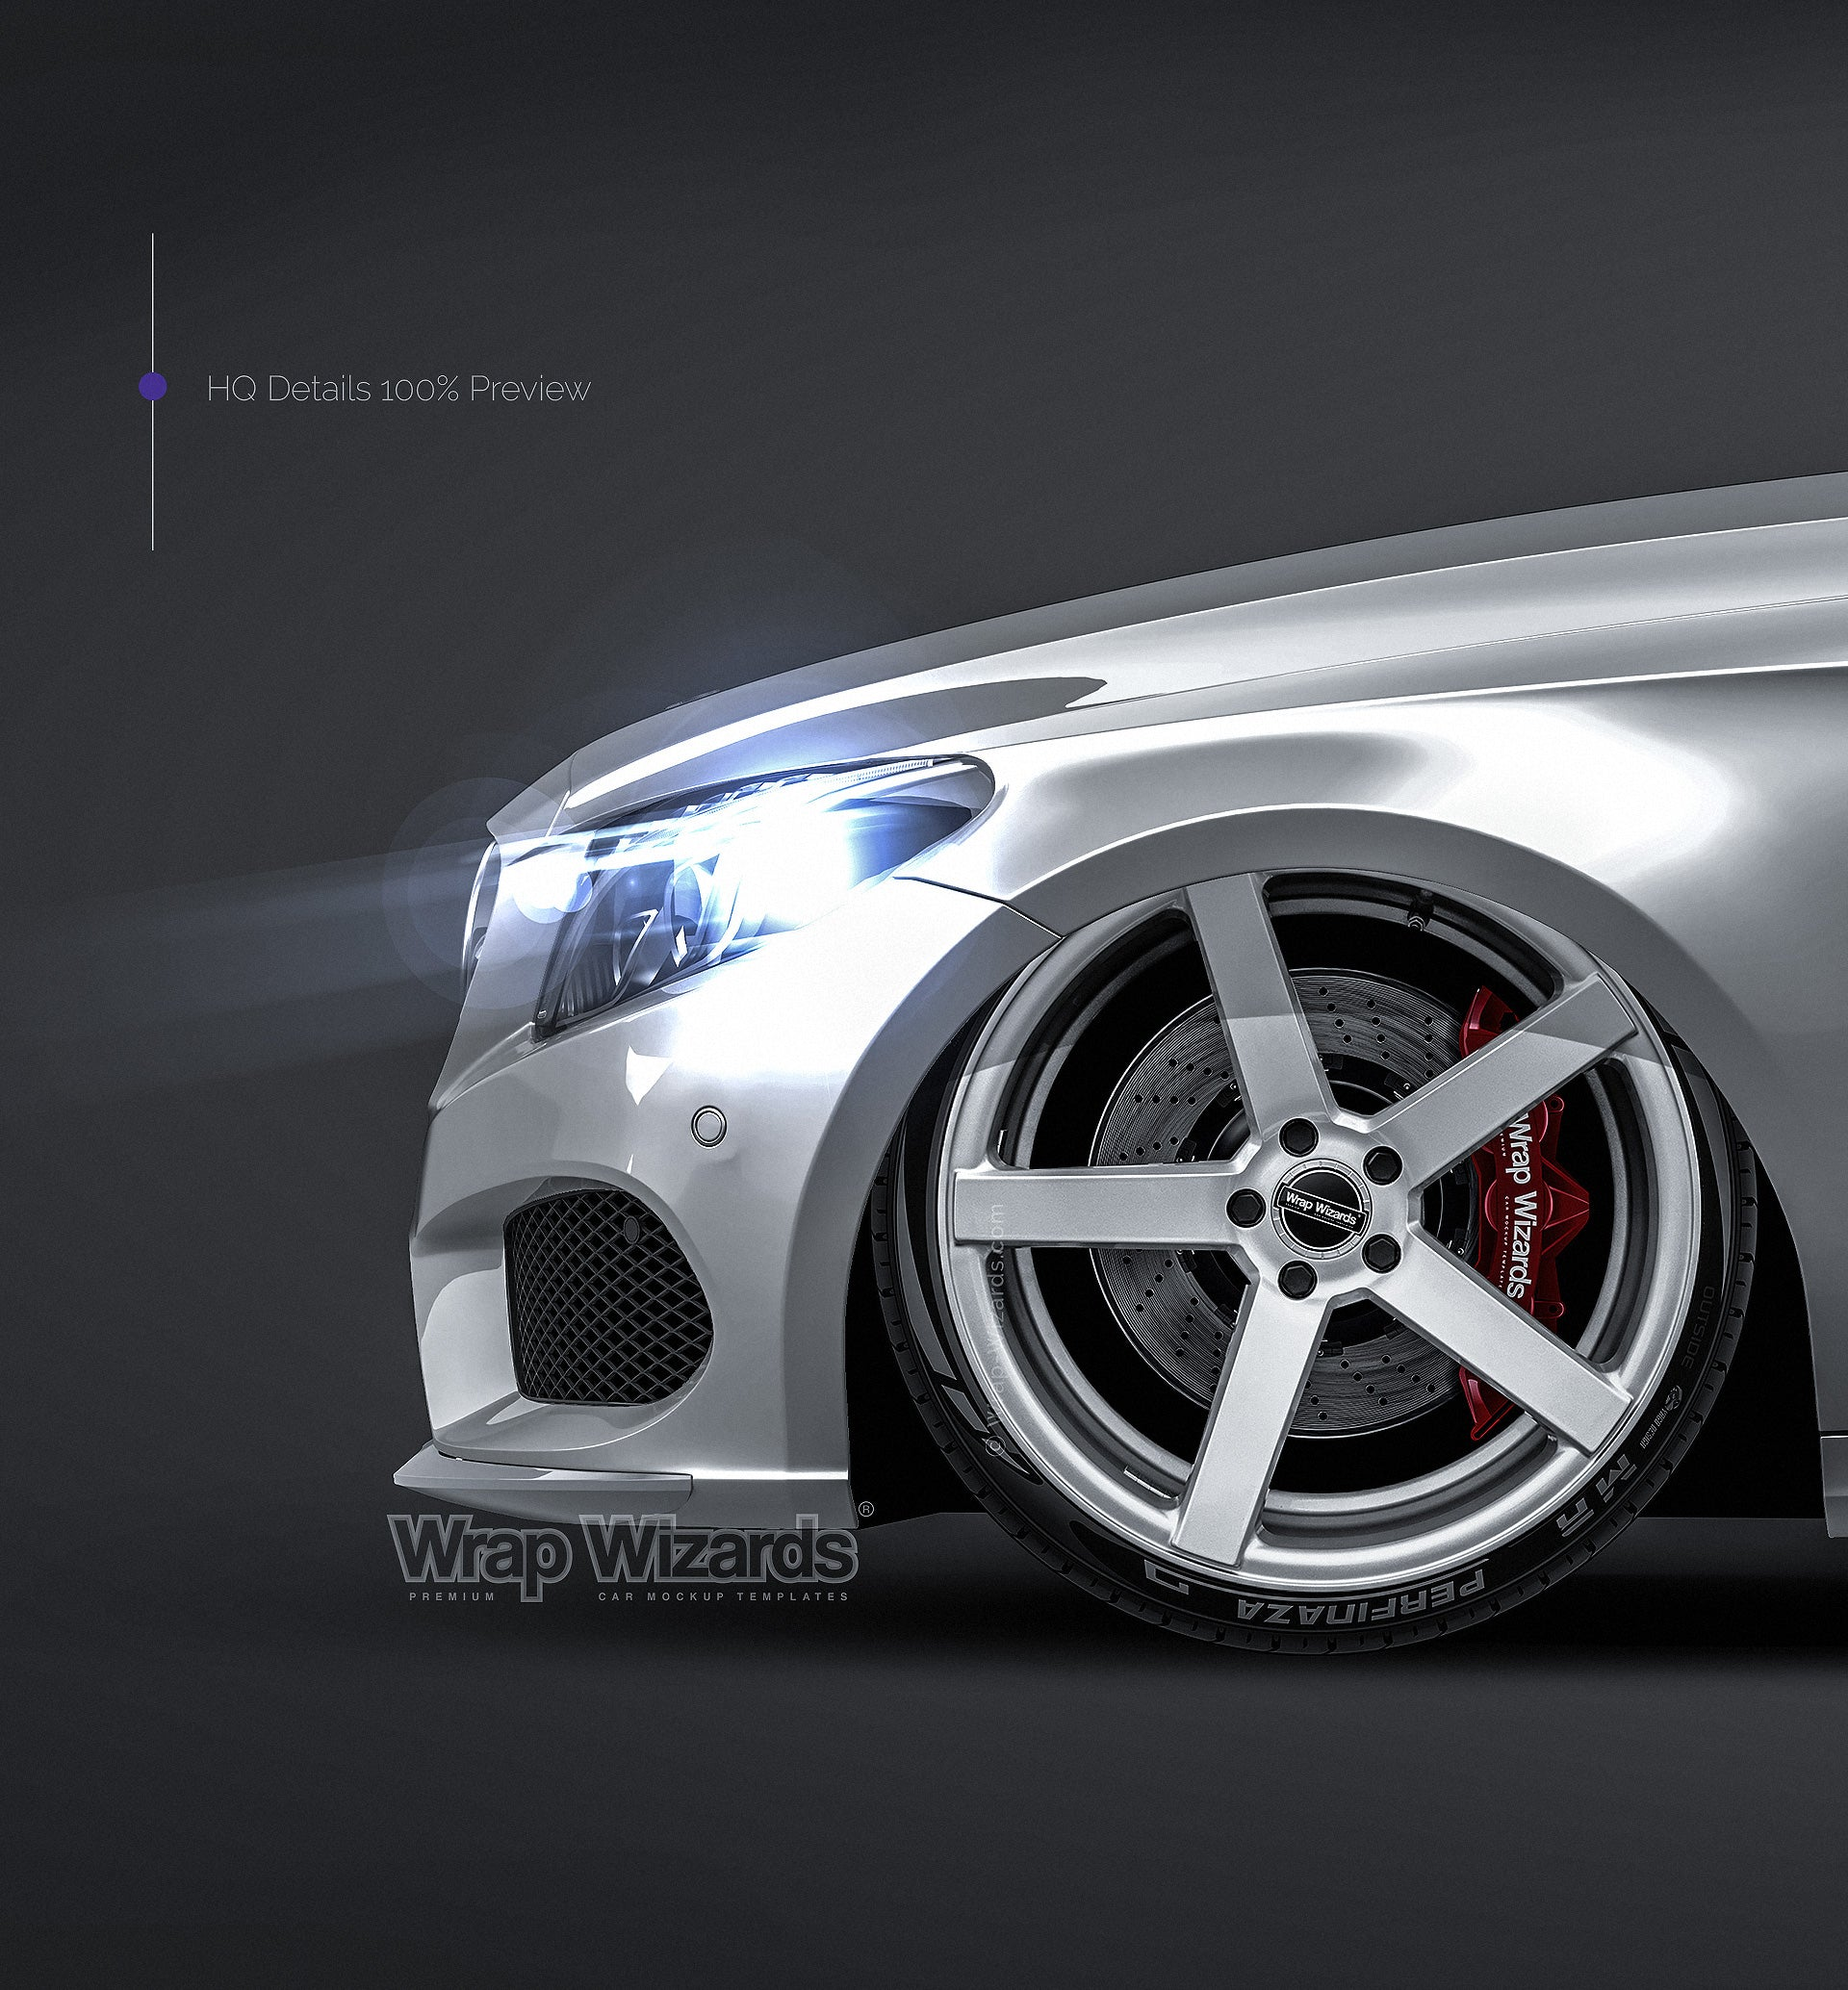 Mercedes Benz C-class Coupe 2017 - all sides Car Mockup Template.psd